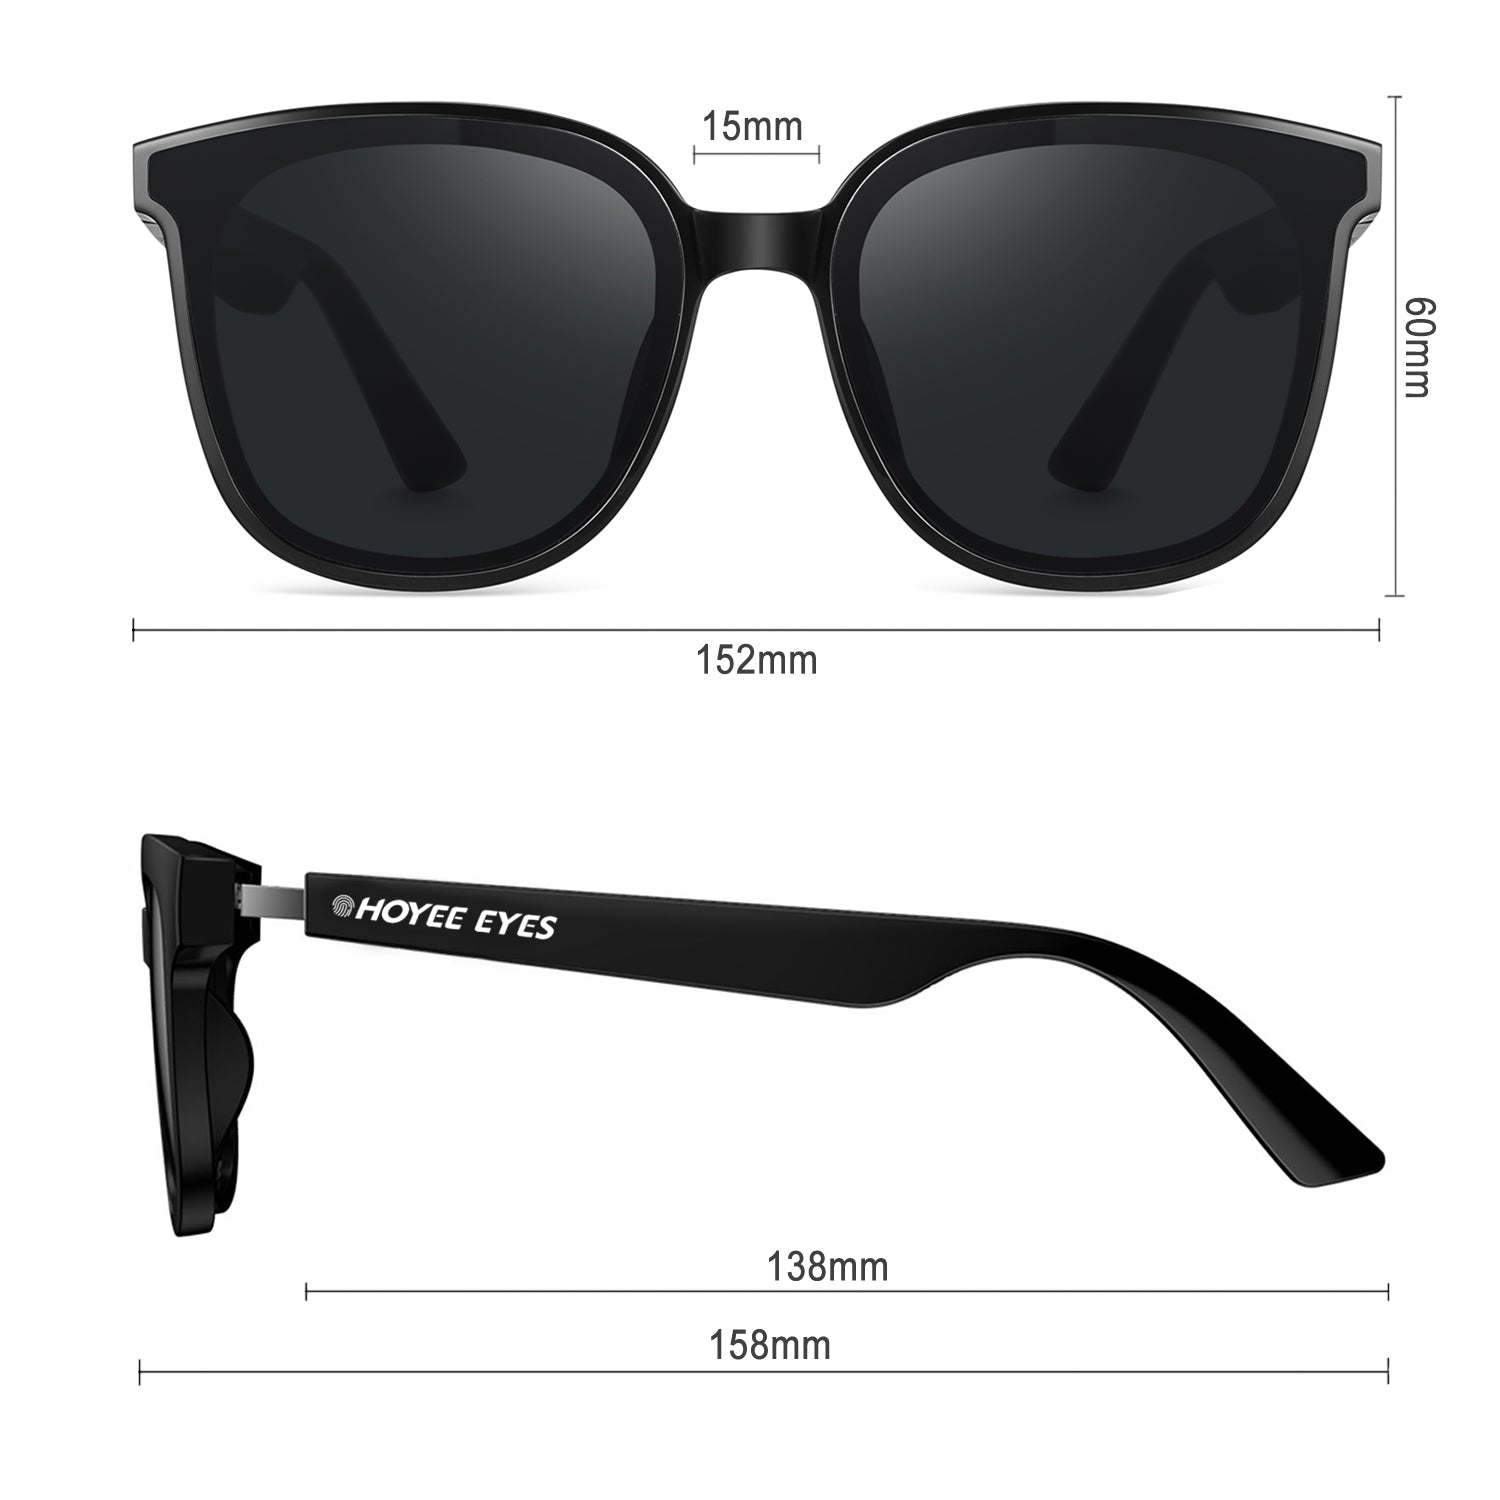 hoyee eyes galaxia smart sunglasses dimensions